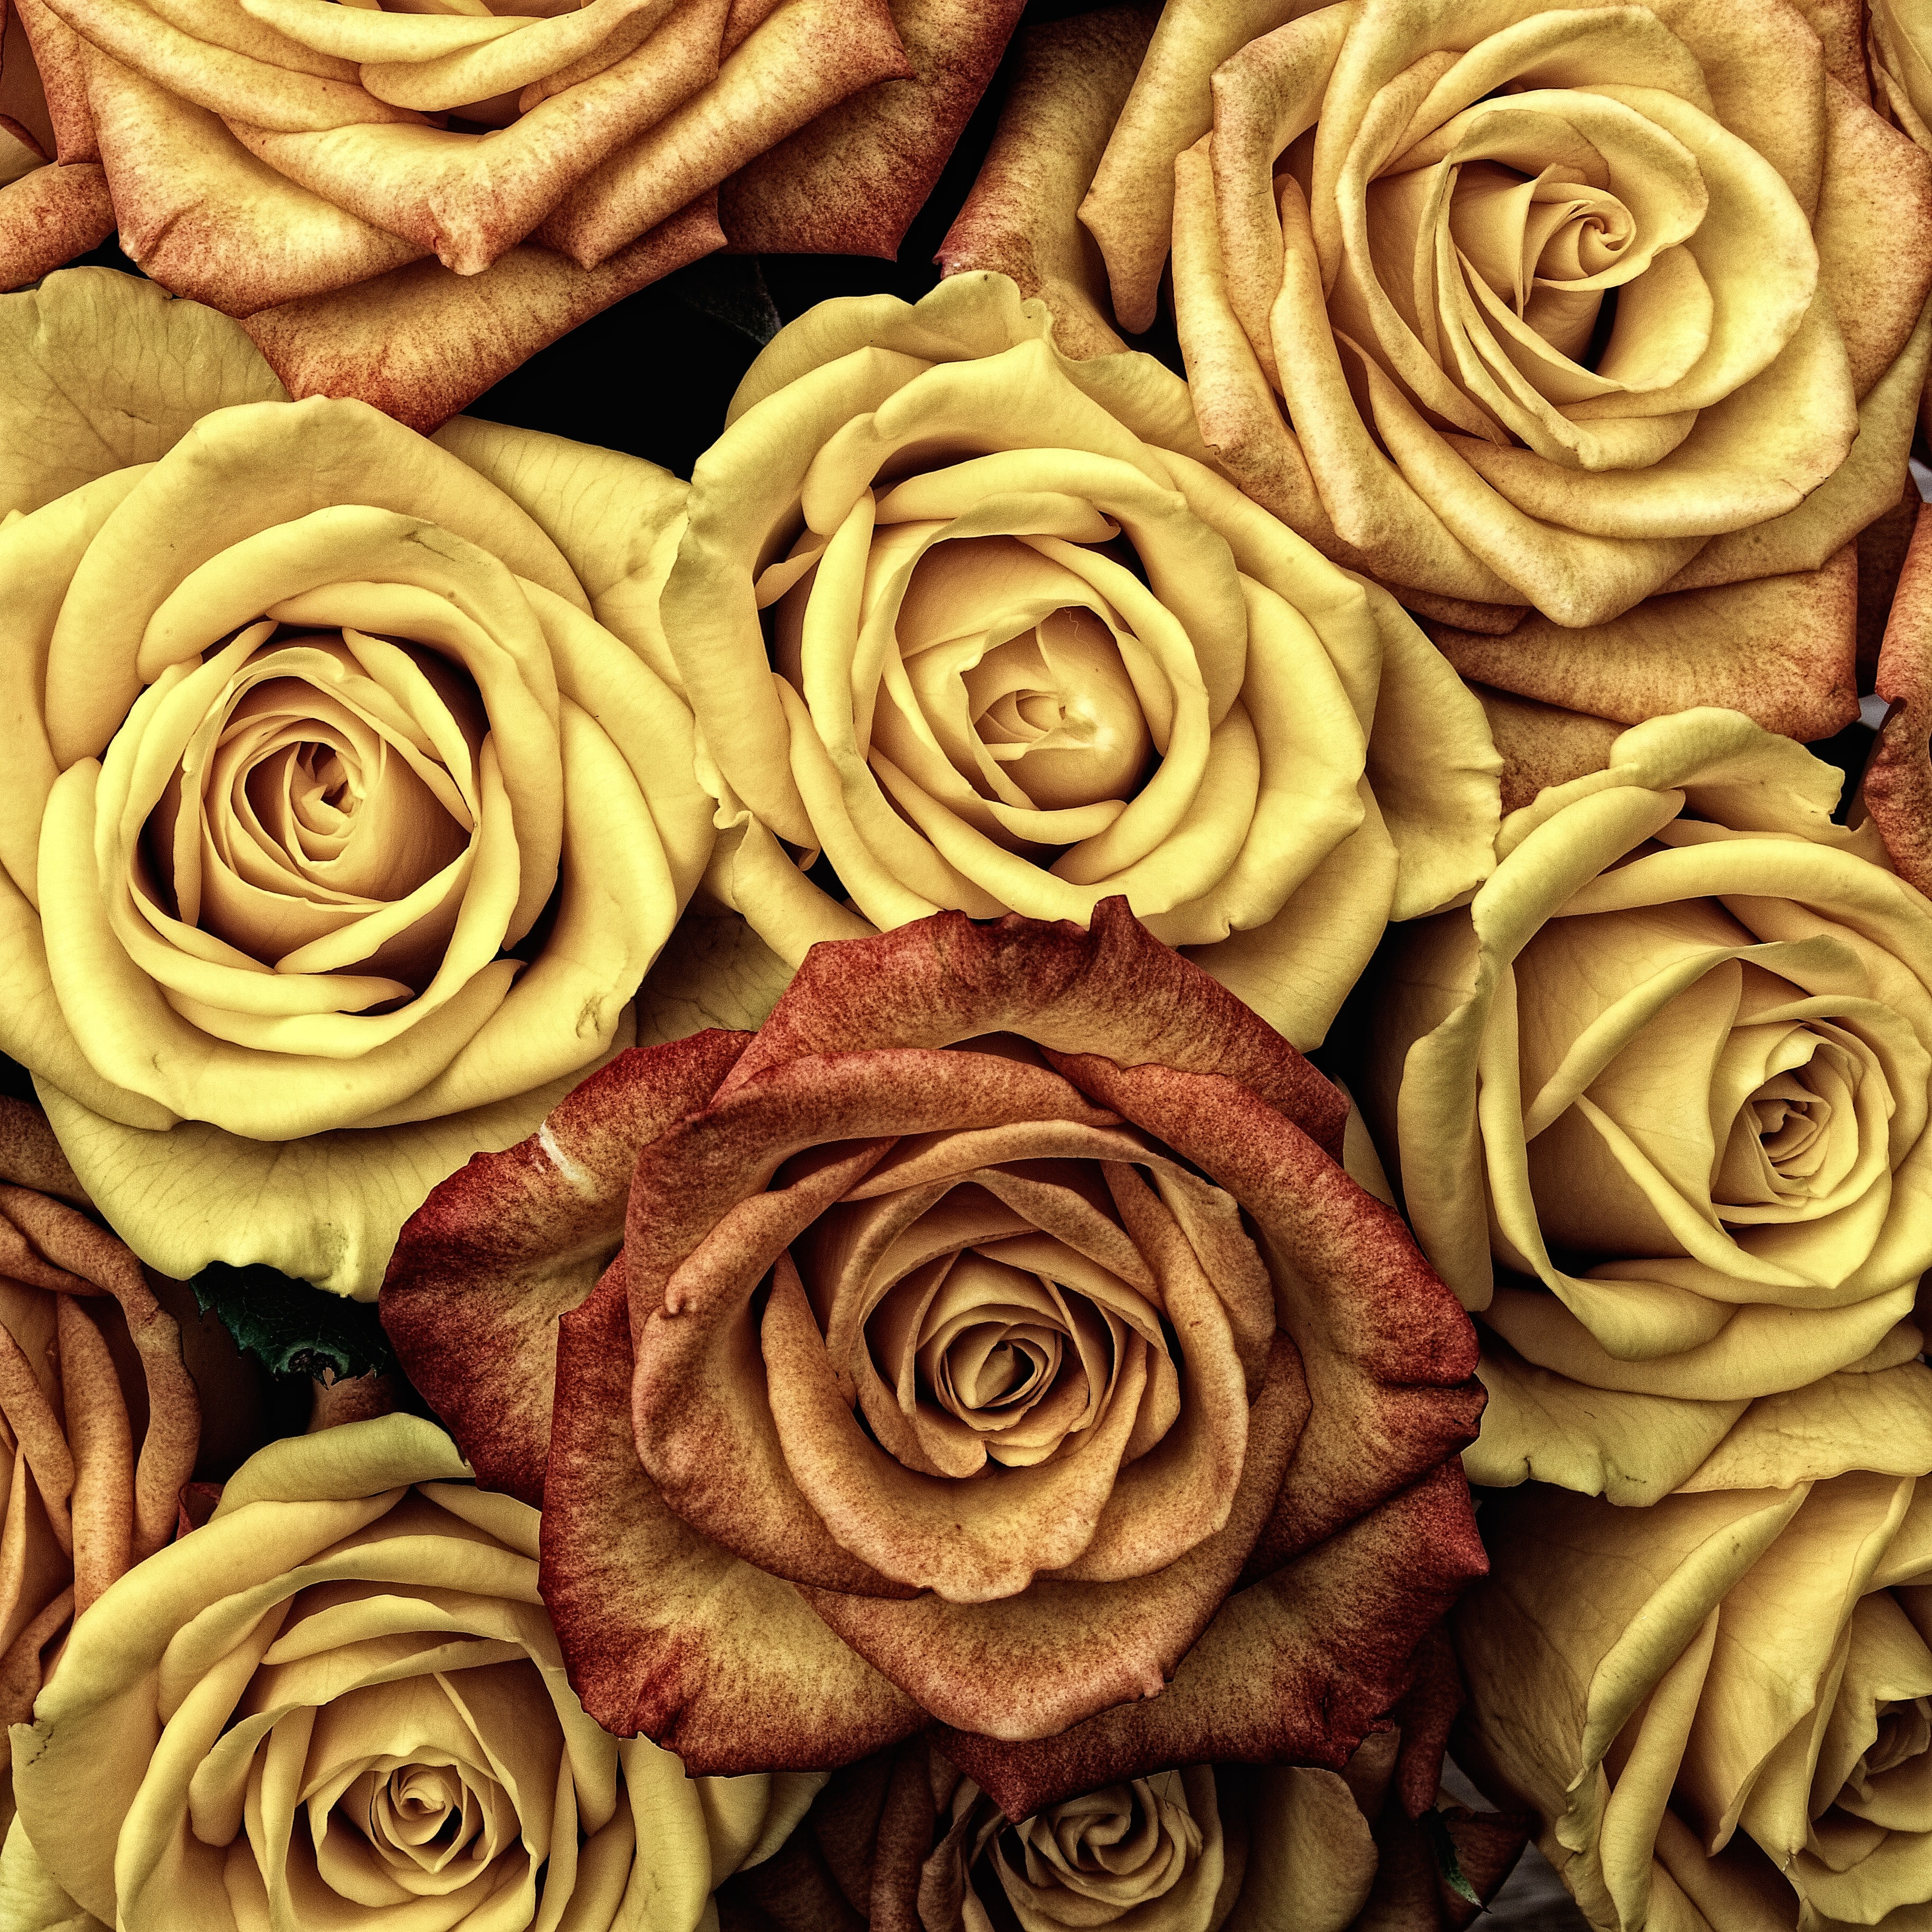 An overhead shot of an arrangement of roses